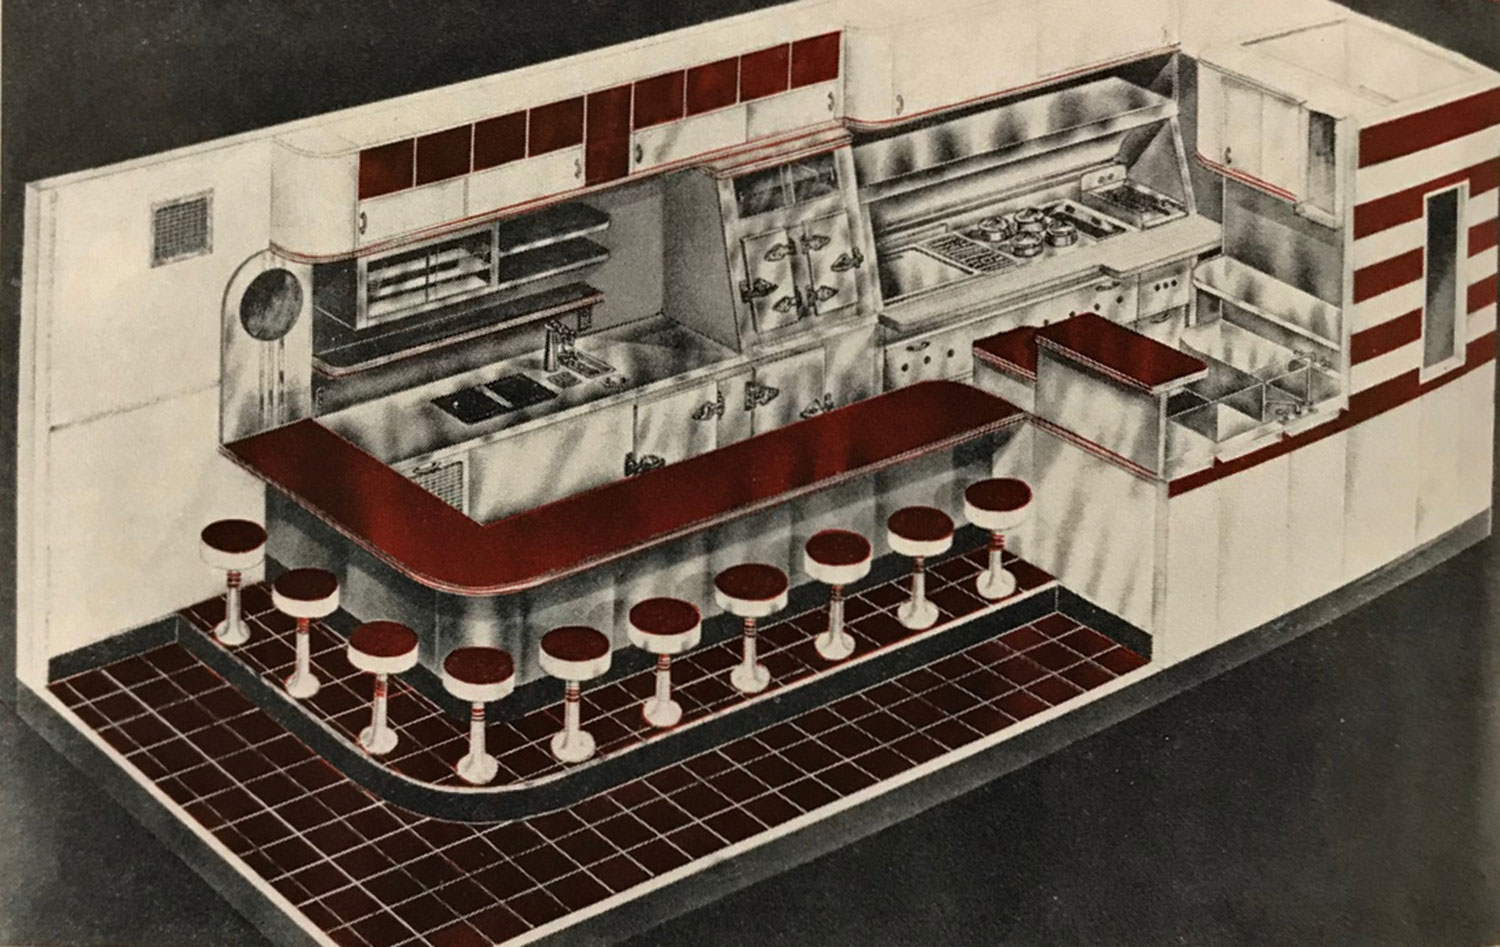 A 10-stool Little Chef diner, 1940s